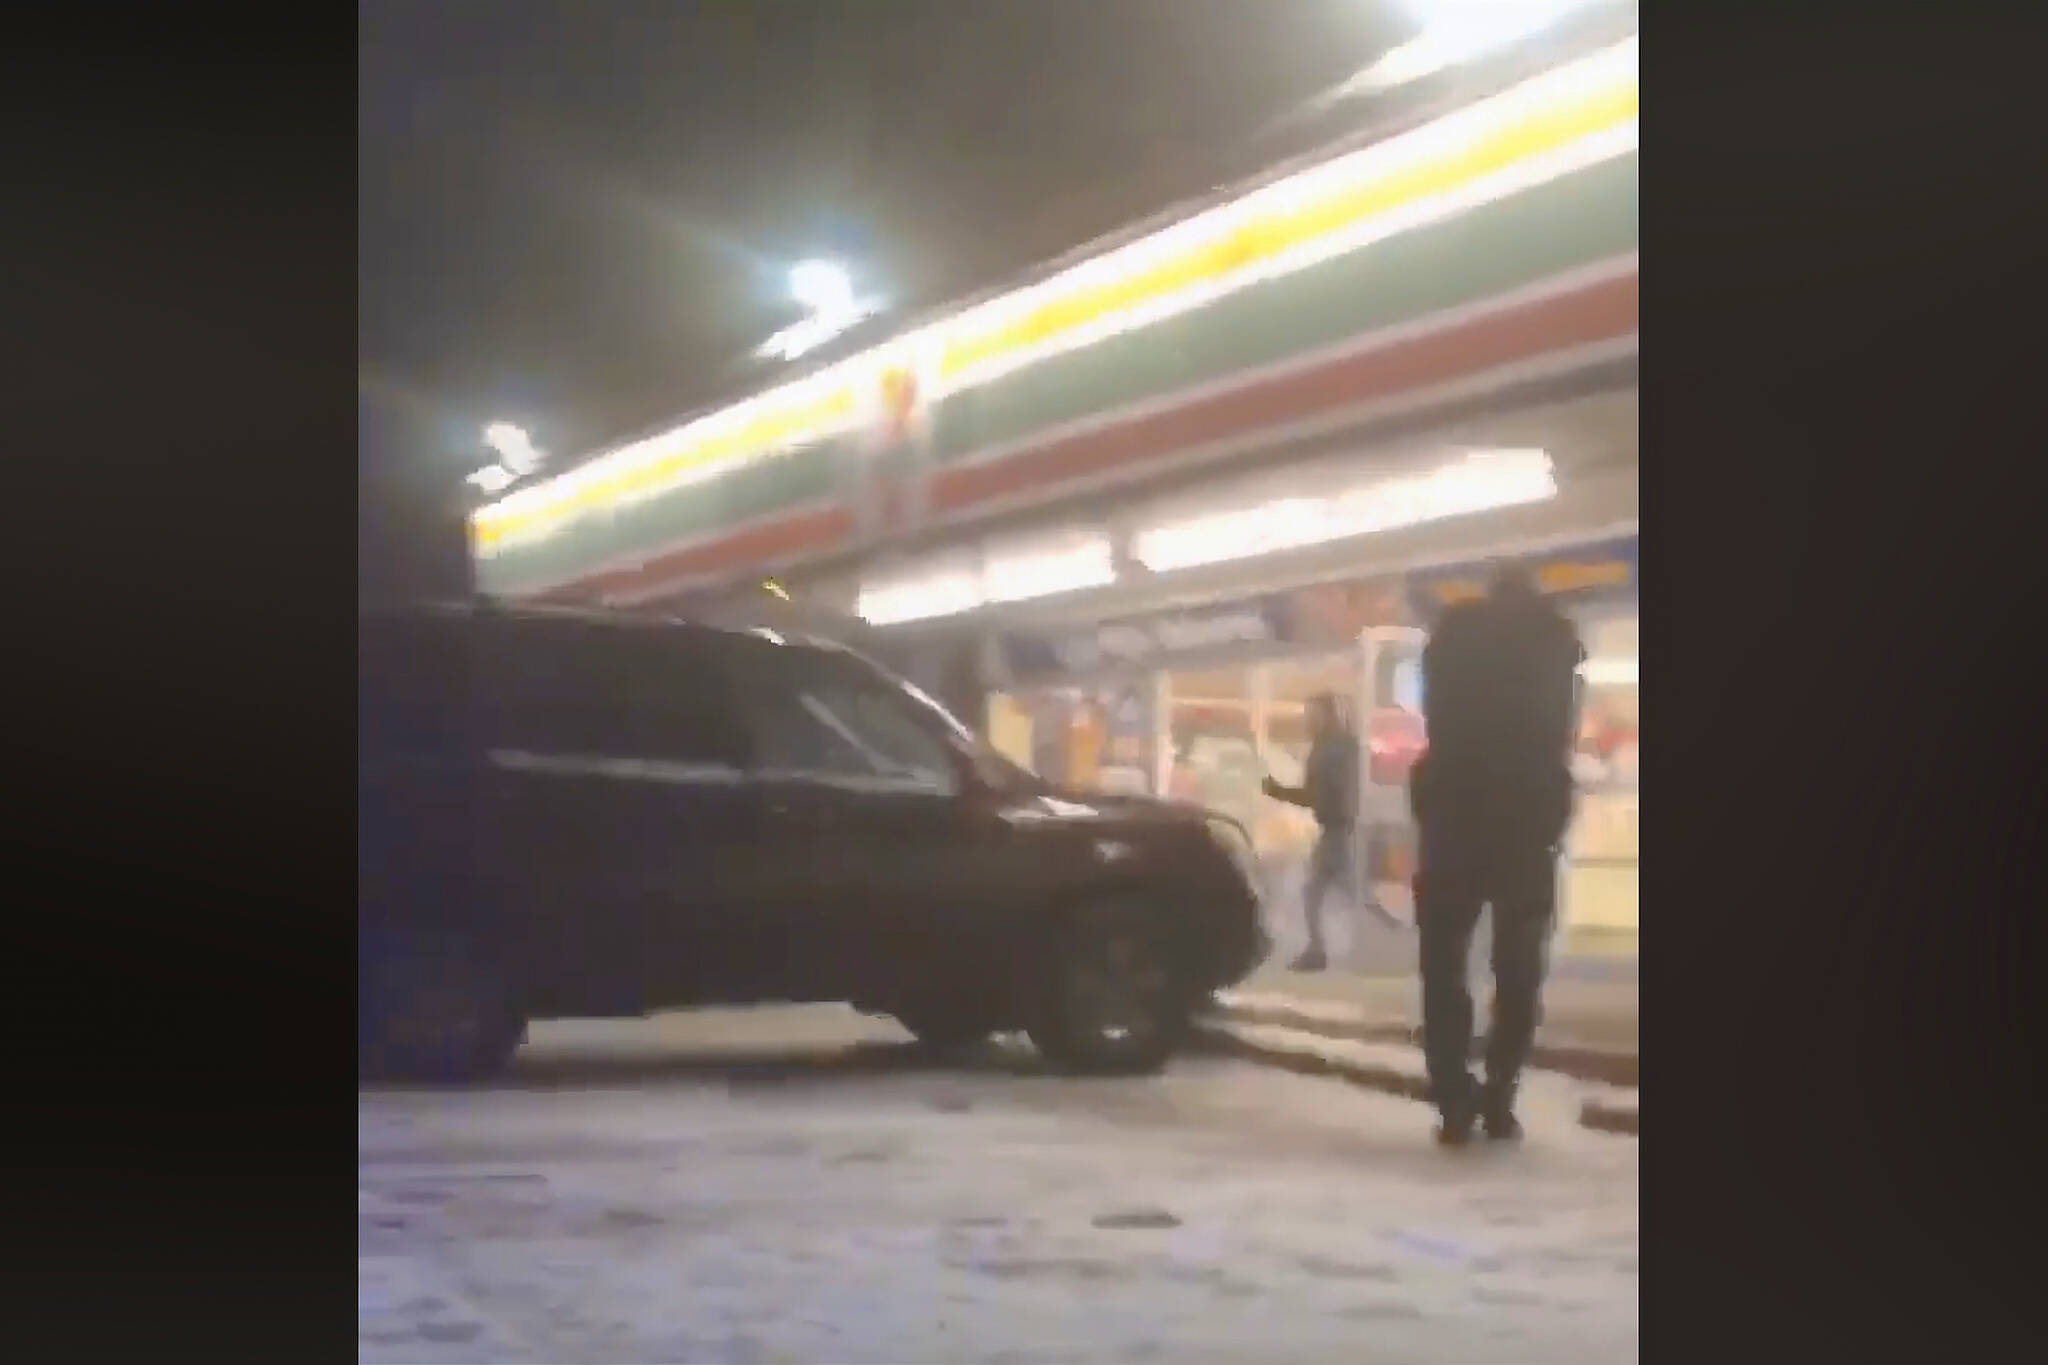 711 shooting winnipeg